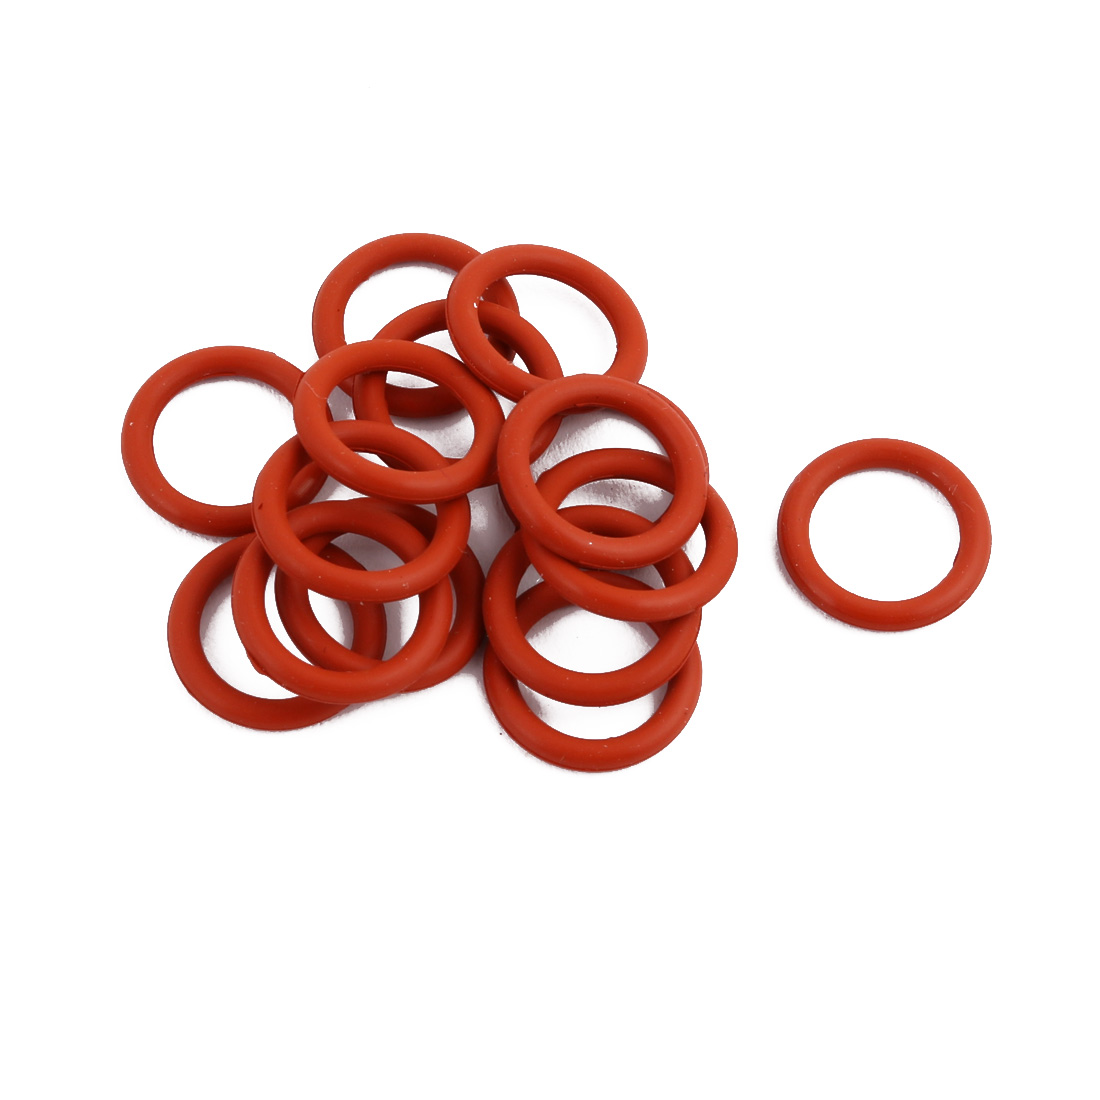 15Pcs Red Round Nitrile Butadiene Rubber NBR O-Ring 13mm OD 1.9mm Width